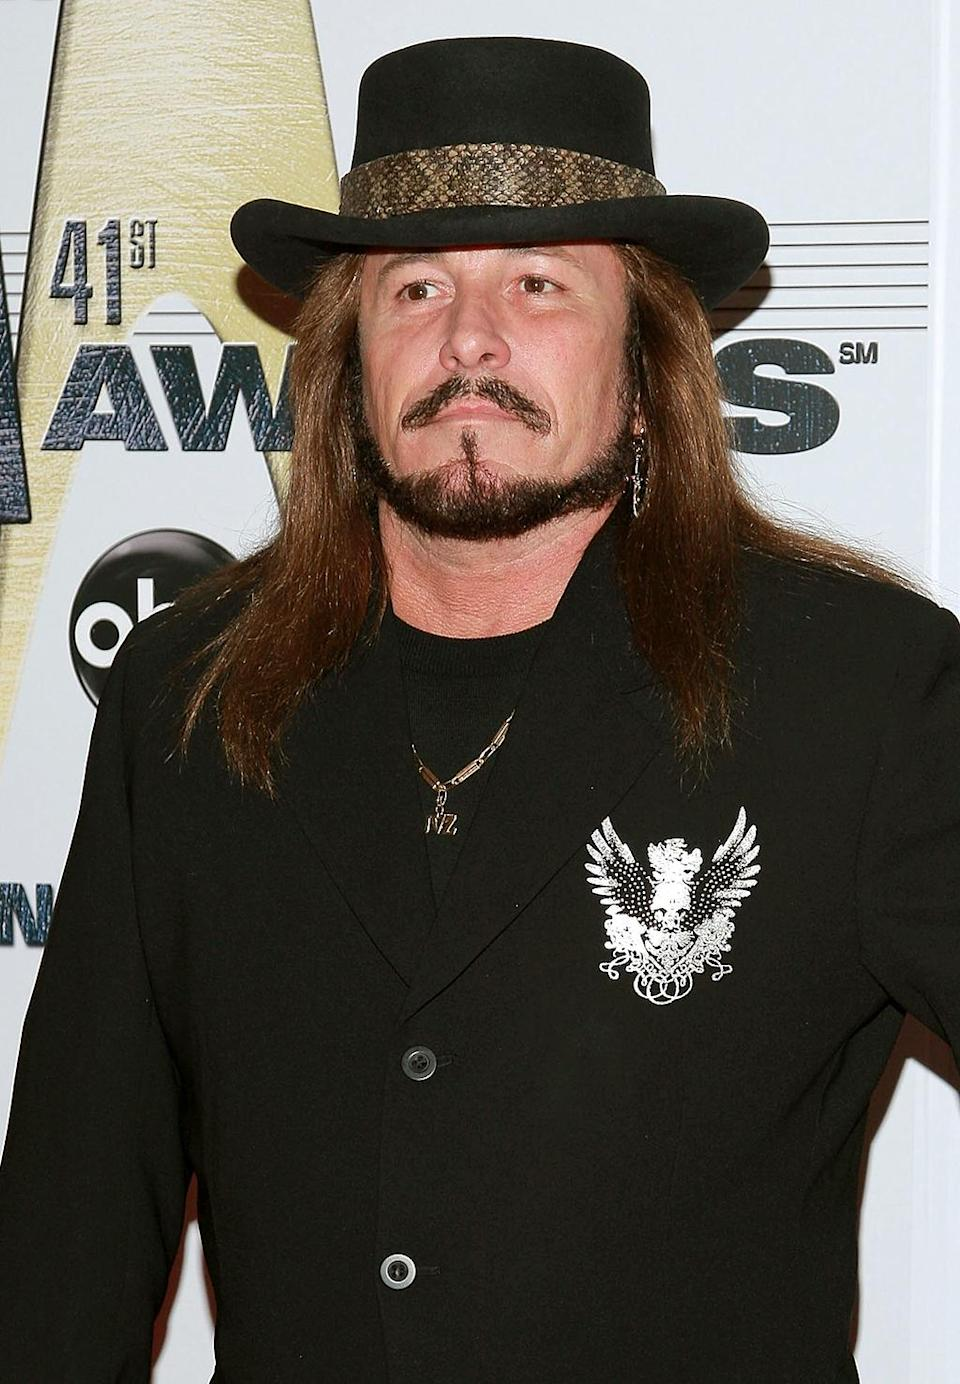 Jimmie Van Zant, born Jimmie Kelsay, was a Southern rock singer-songwriter and guitarist and the illegitimate son of E. C. Van Zant (uncle of Donnie, Johnny, and Ronnie Van Zant. He died on April 7 at age 59, after battling liver cancer for several years. (Photo: Getty)